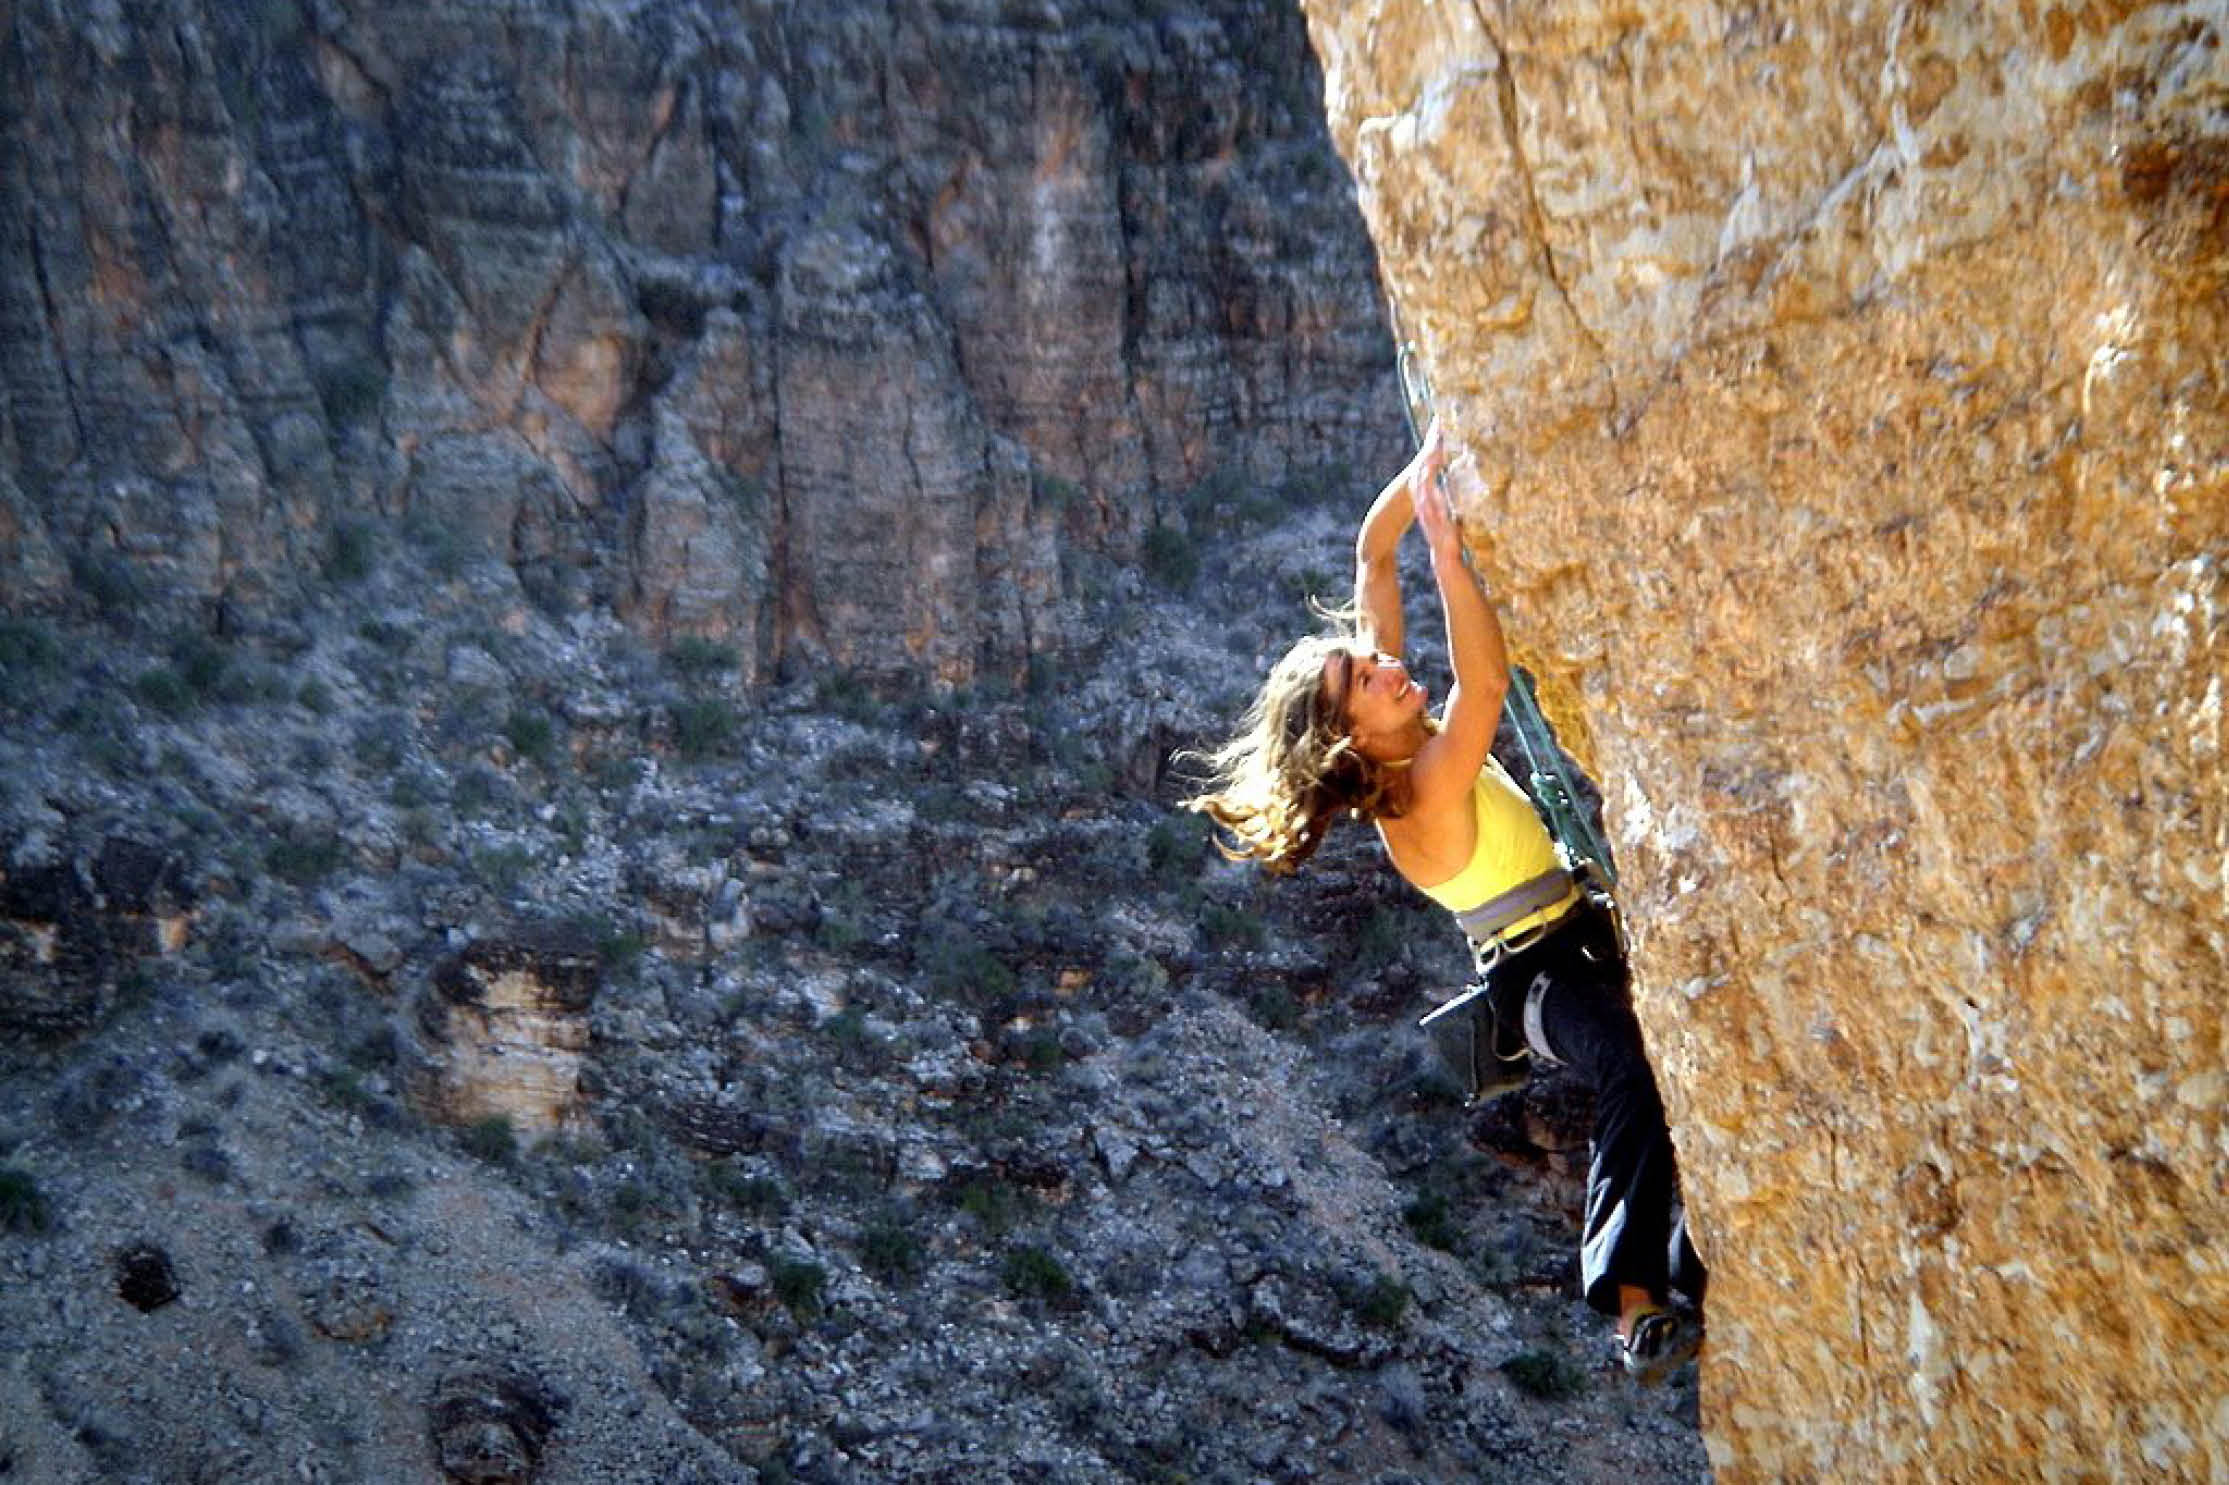 Top 5 Rock Climbing Destinations